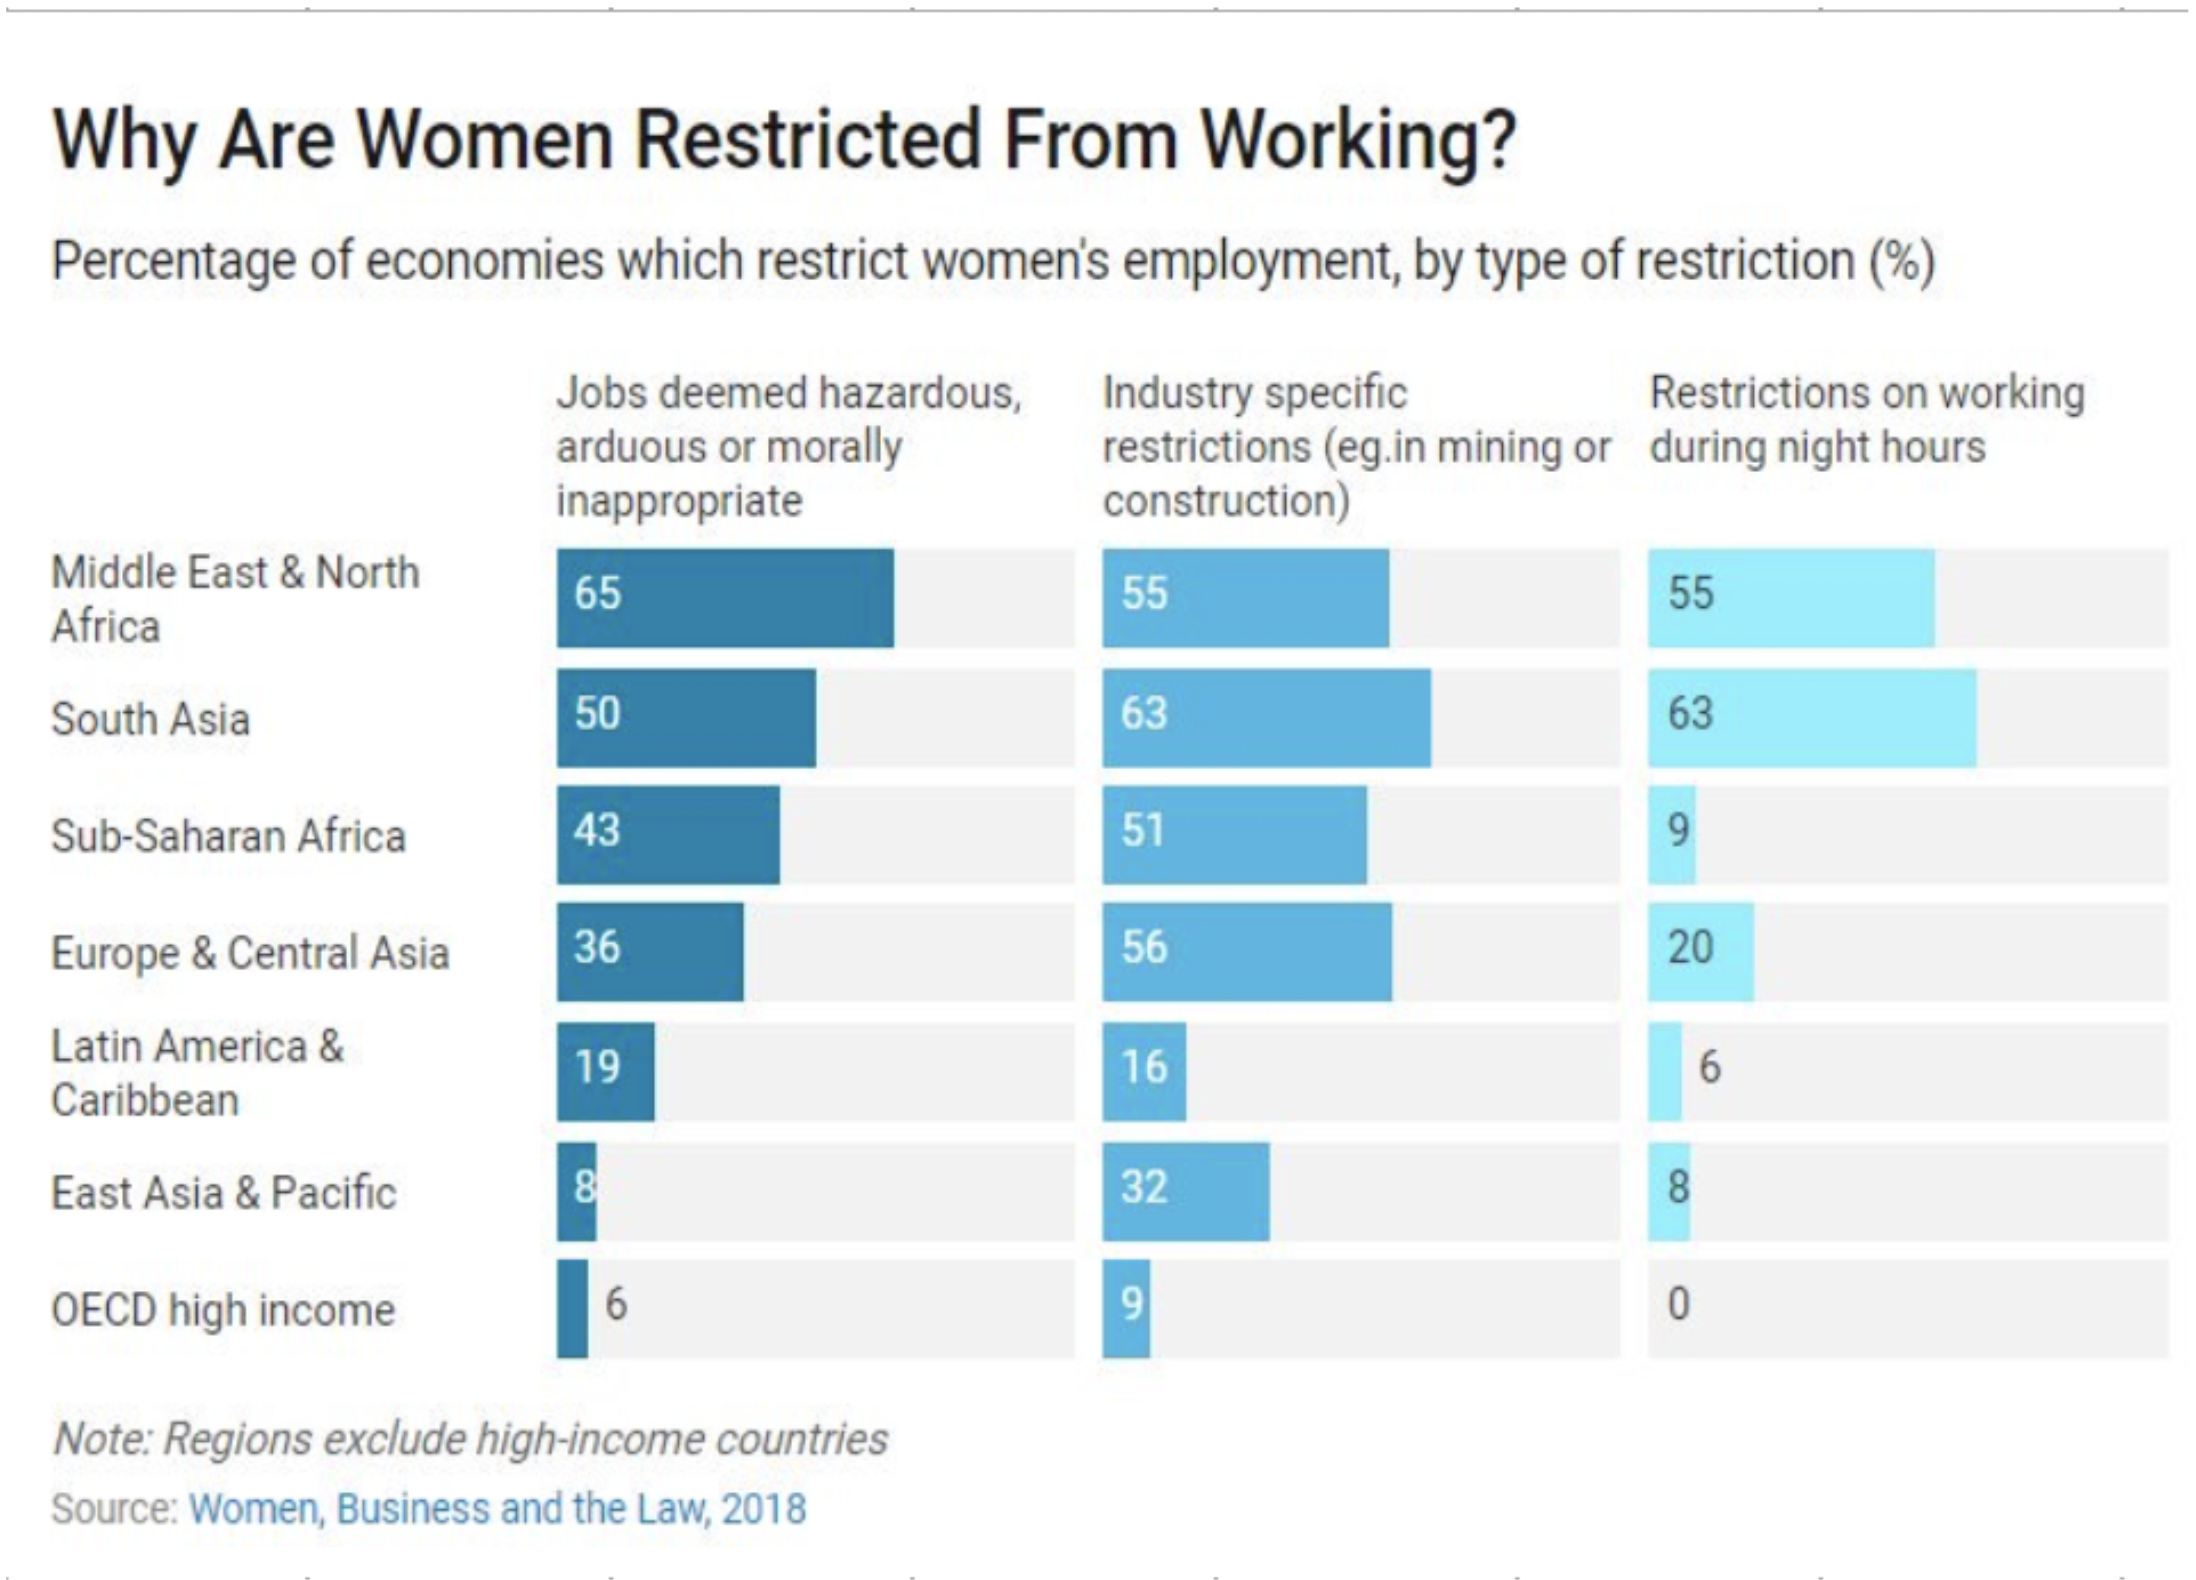 Women in MENA face the greatest barriers to entering the workplace